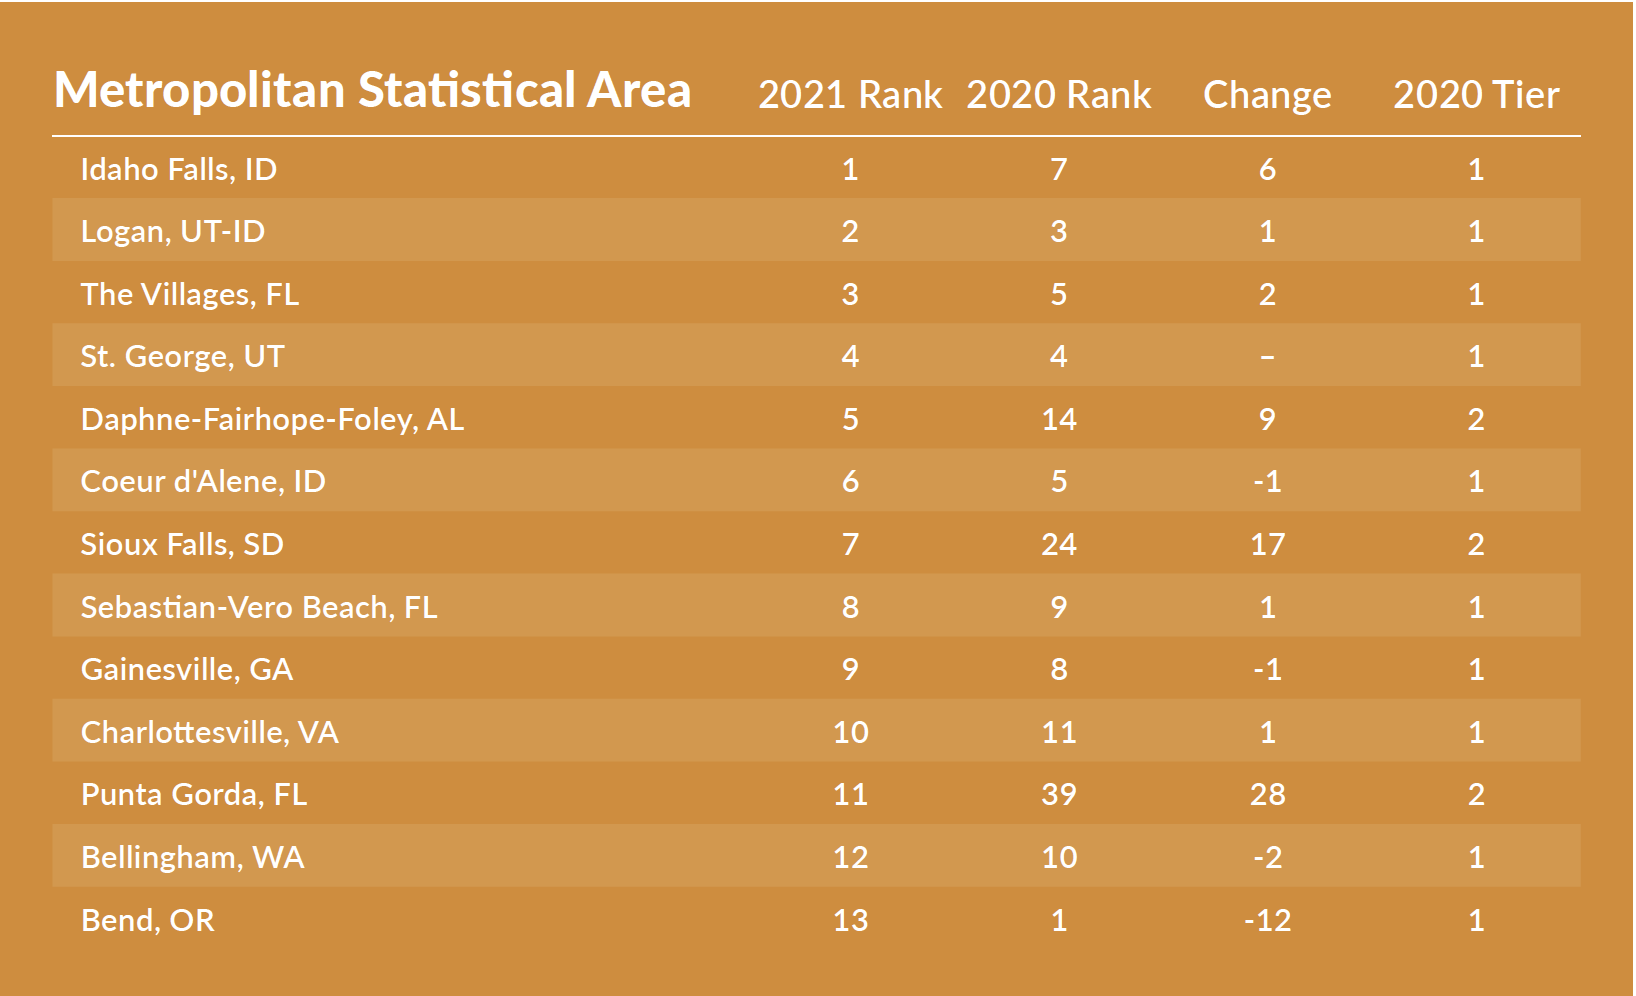 BPC 2021: Top 10 Small Cities